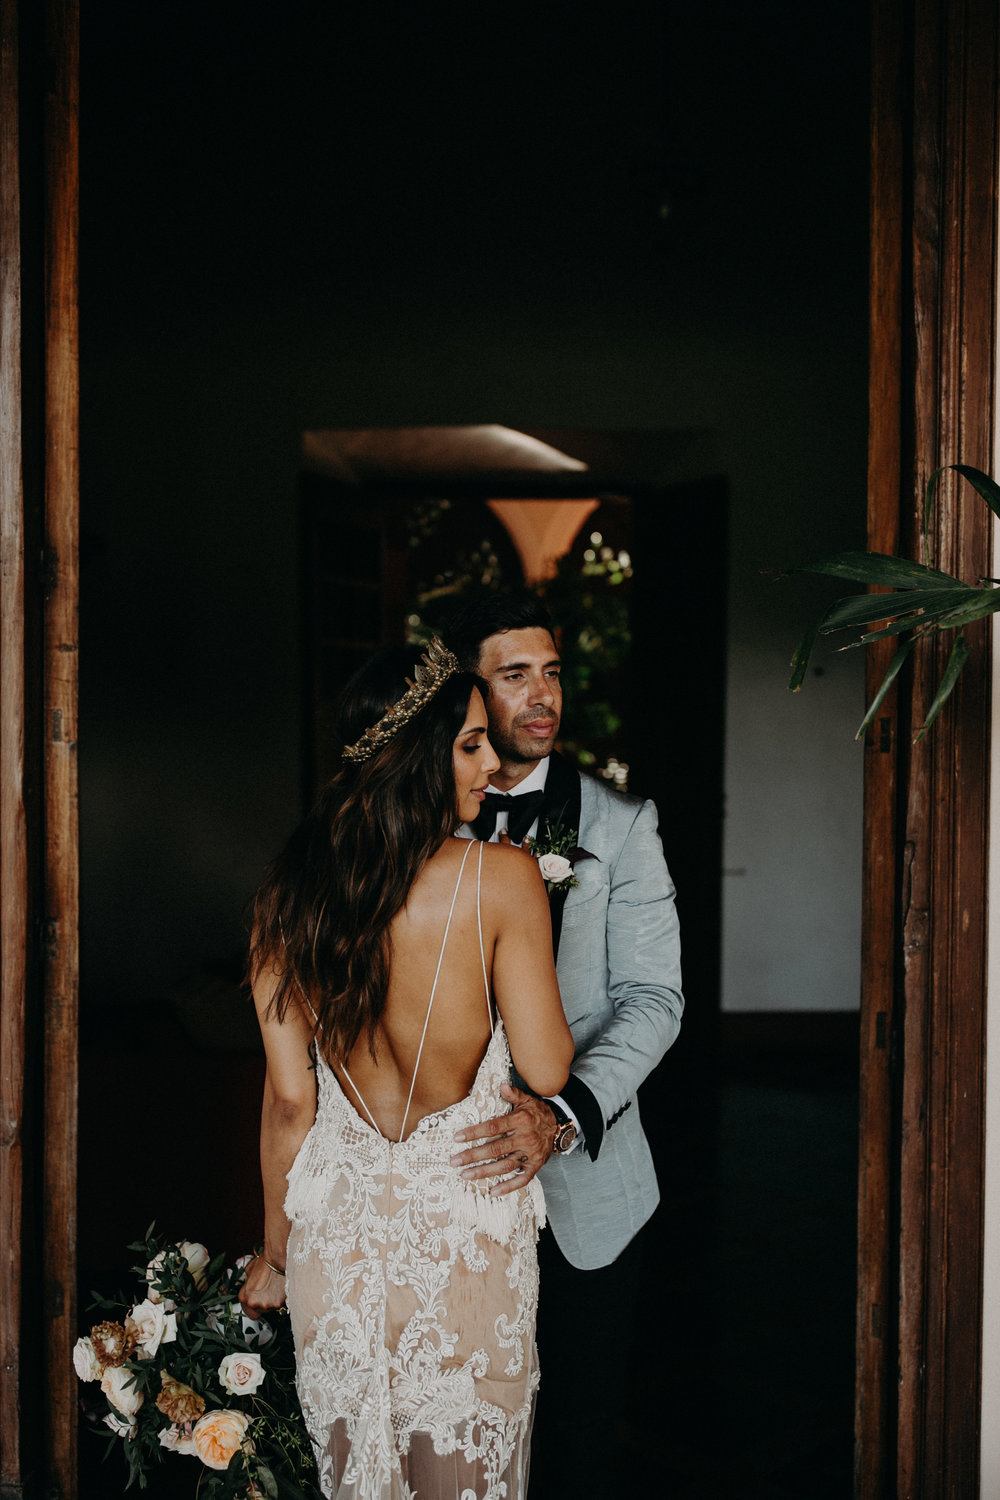 Hacienda Temozon Yucatan Mexico Wedding | Ida & Peter Emily Magers Photography-771.jpg